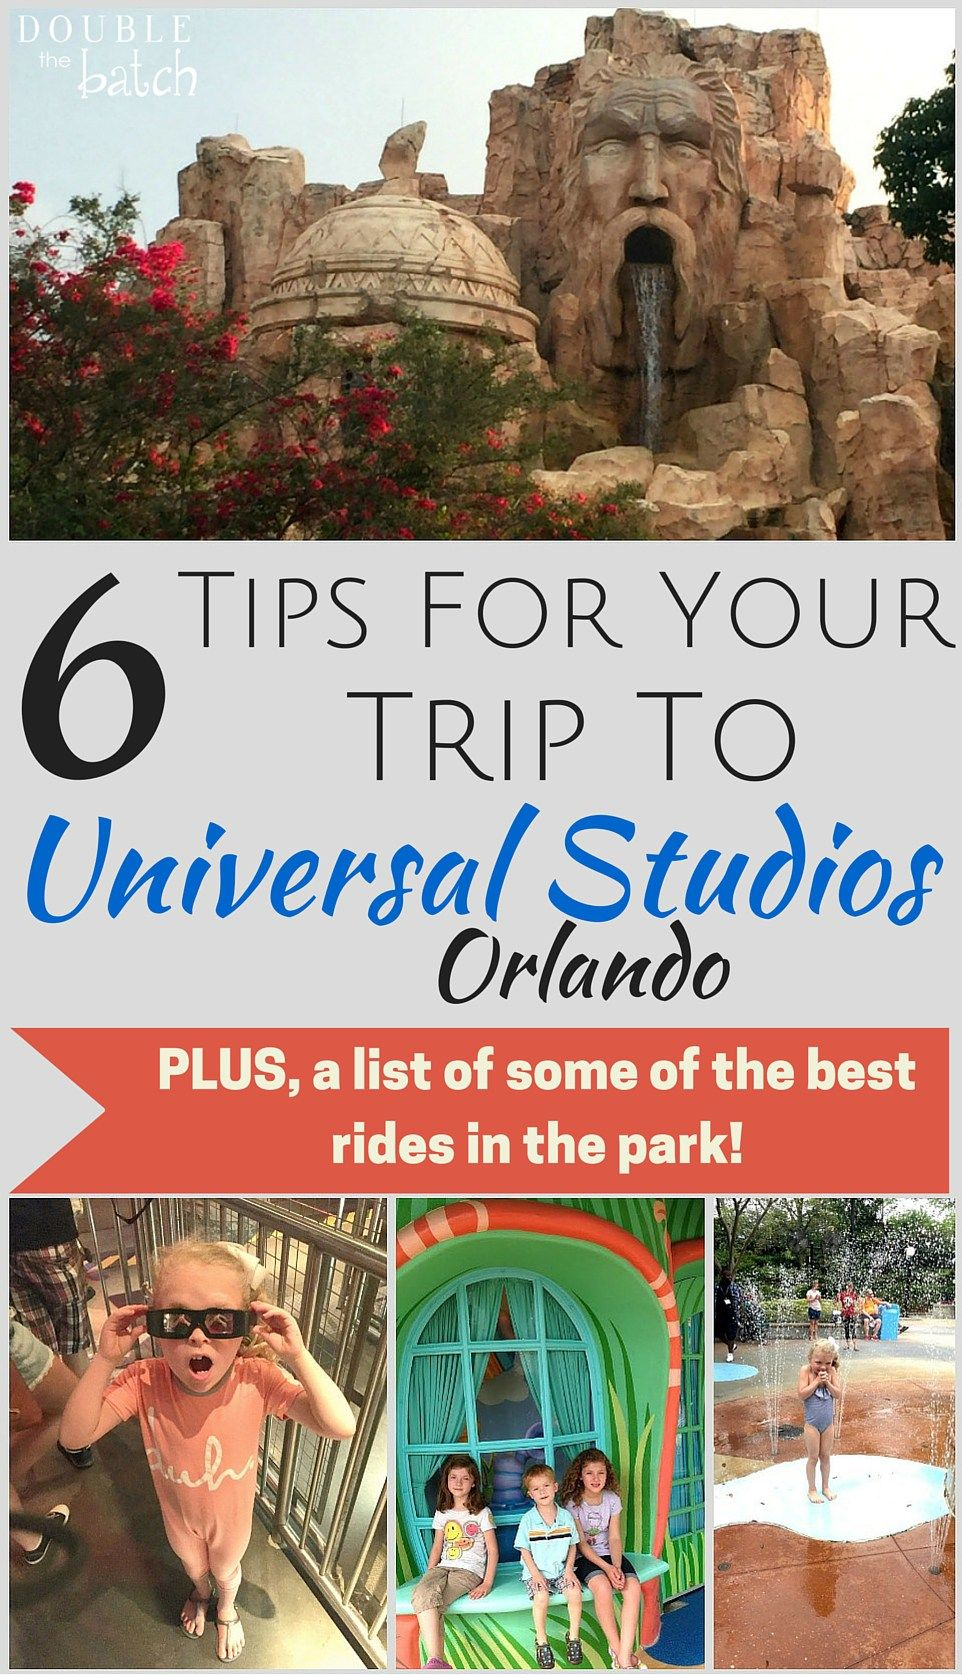 Tips For Visiting Universal Studios Orlando A Plus List Of The Best Ride Saving This Our Next Vacation